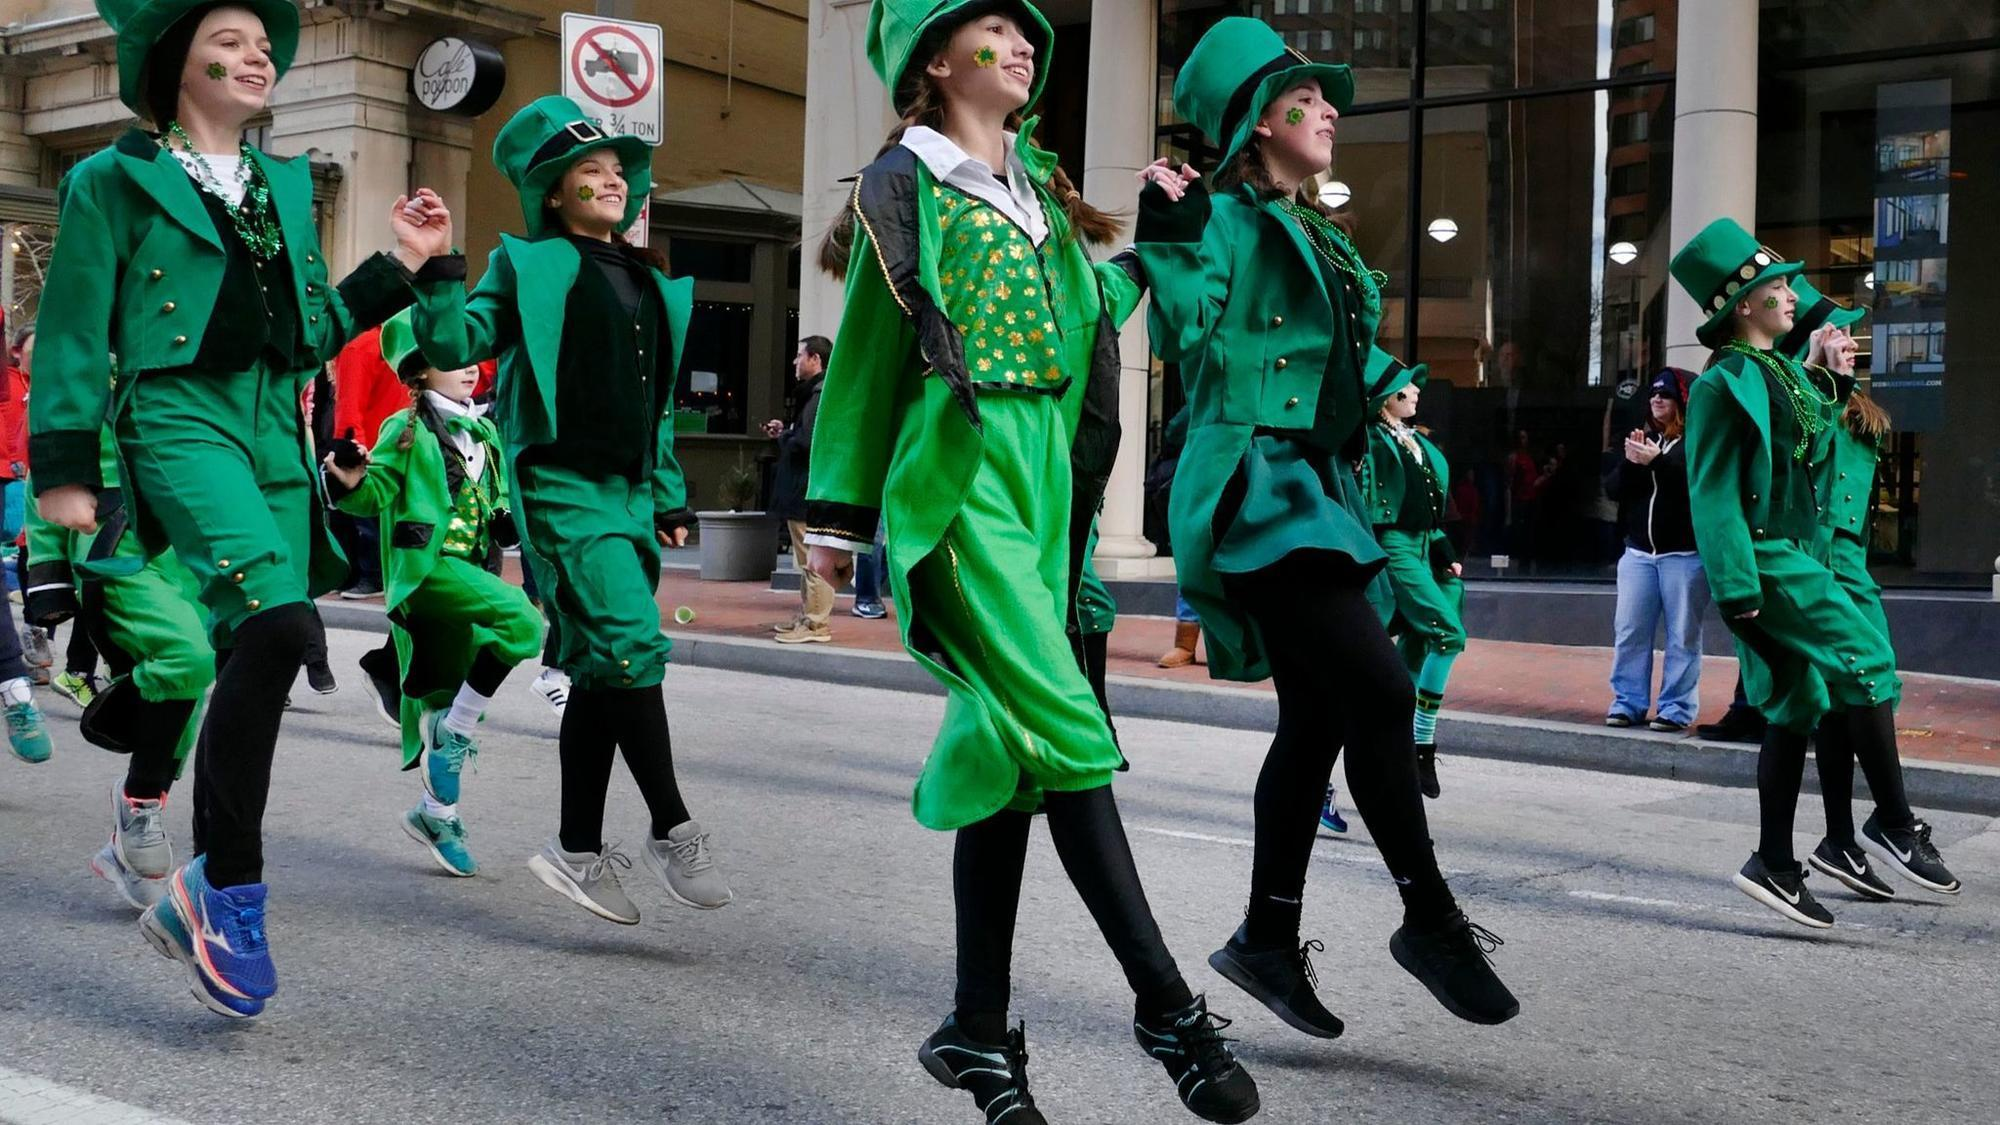 Baltimore's St. Patrick's Day Parade has (almost) everyone wearing green